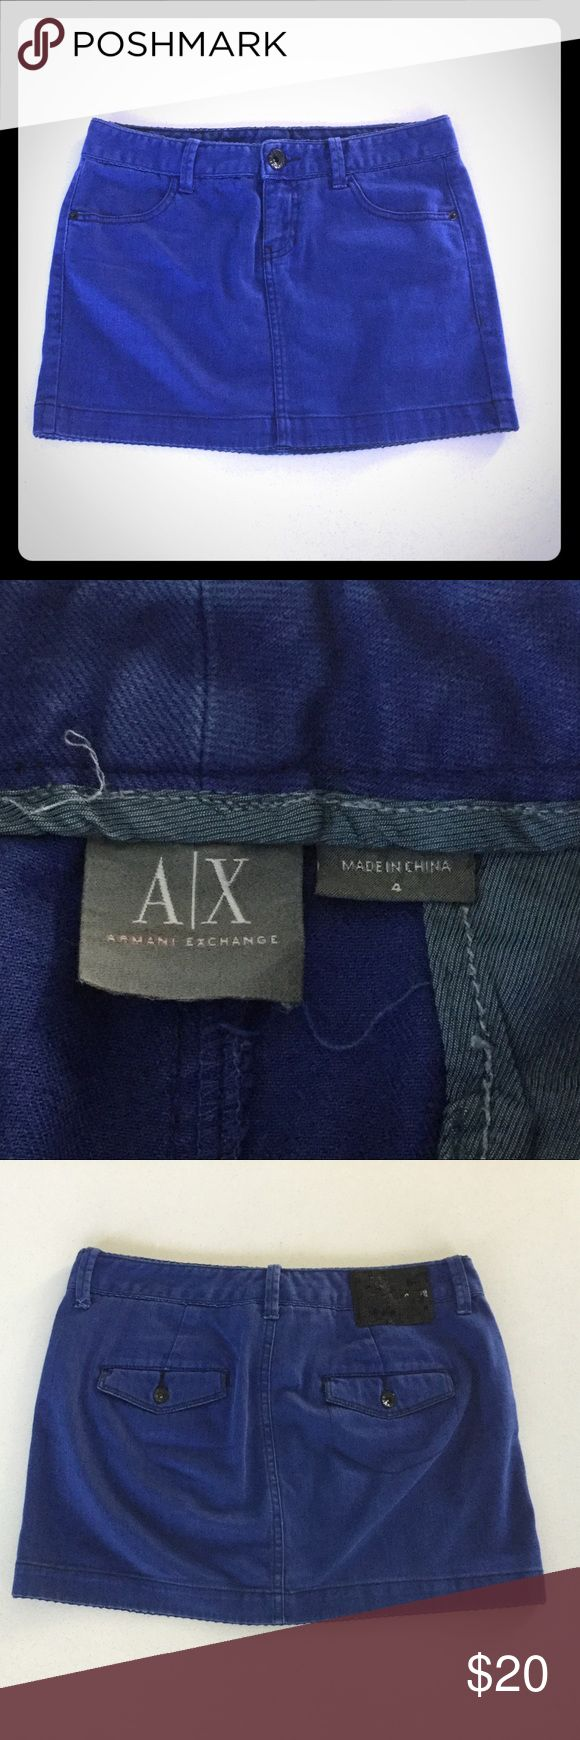 ARMANI EXCHANGE blue mini with sequin detail SZ 4 AX ARMANI EXCHANGE royal blue denim mini with black sequin detail on the back.  Cute pockets with black luxe buttons.  Size 4.  In great used condition, a bit of wear but NO flaws, stains, rips, etc. A/X Armani Exchange Skirts